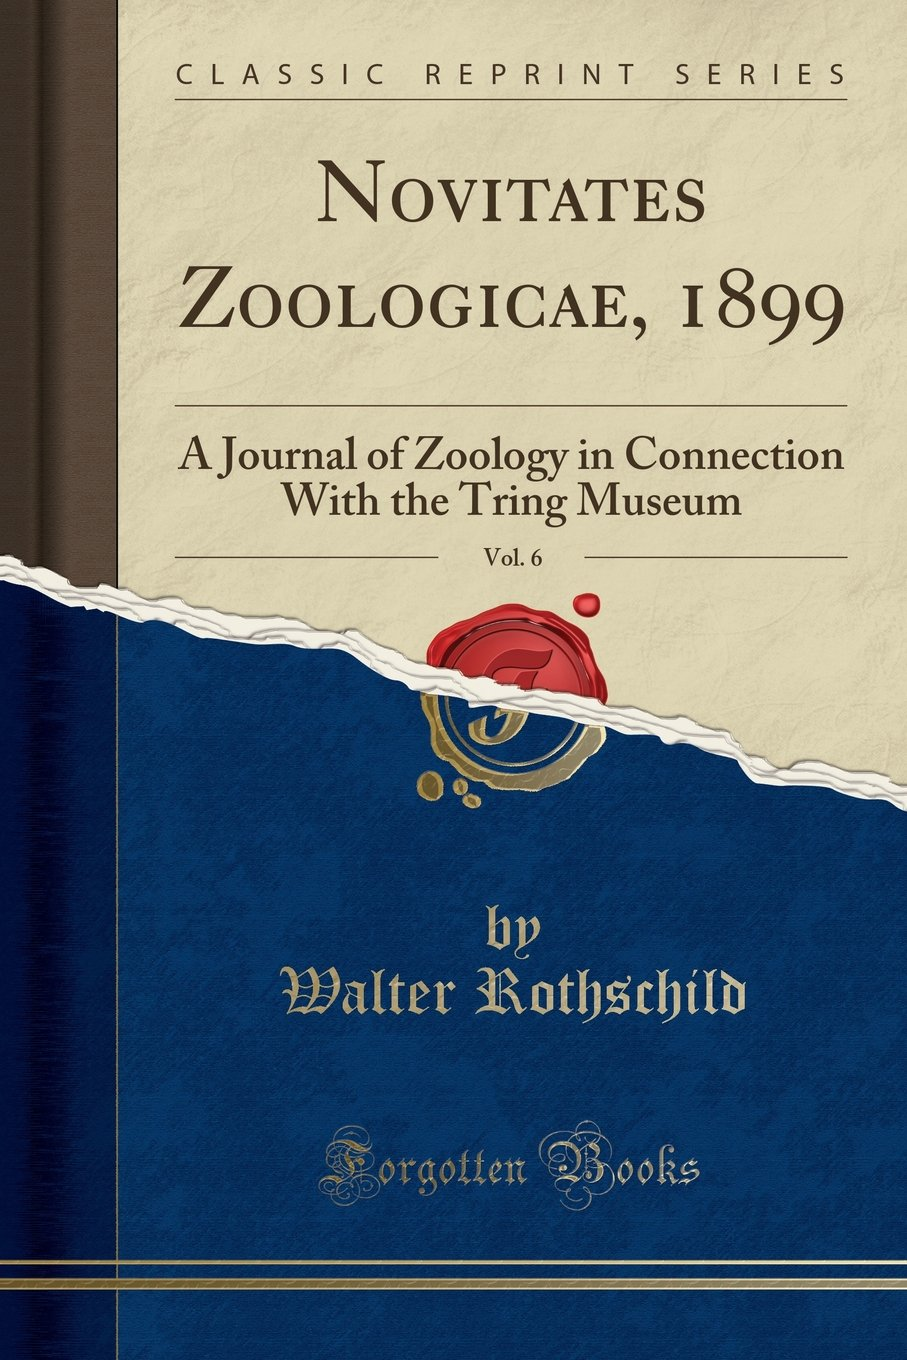 Novitates Zoologicae, 1899, Vol. 6: A Journal of Zoology in Connection With the Tring Museum (Classic Reprint) PDF